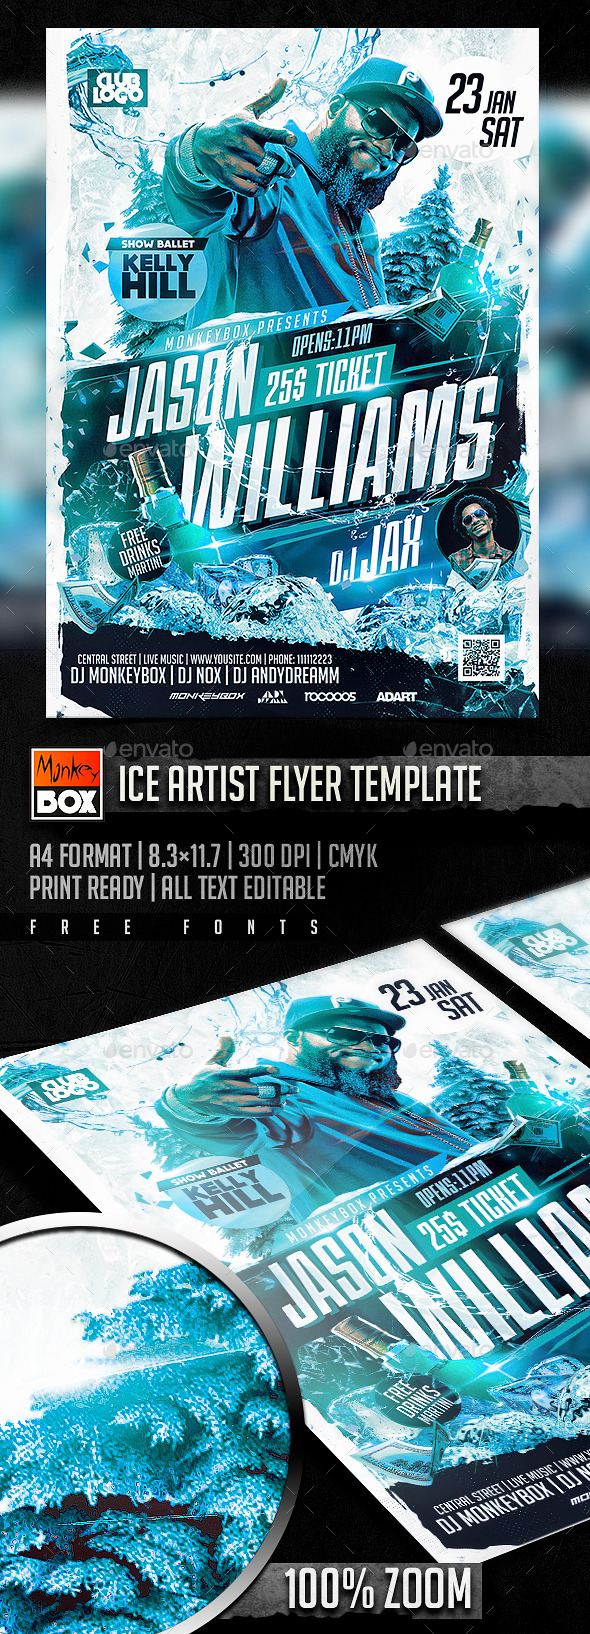 Ice Artist Flyer Template - Flyers Print Templates